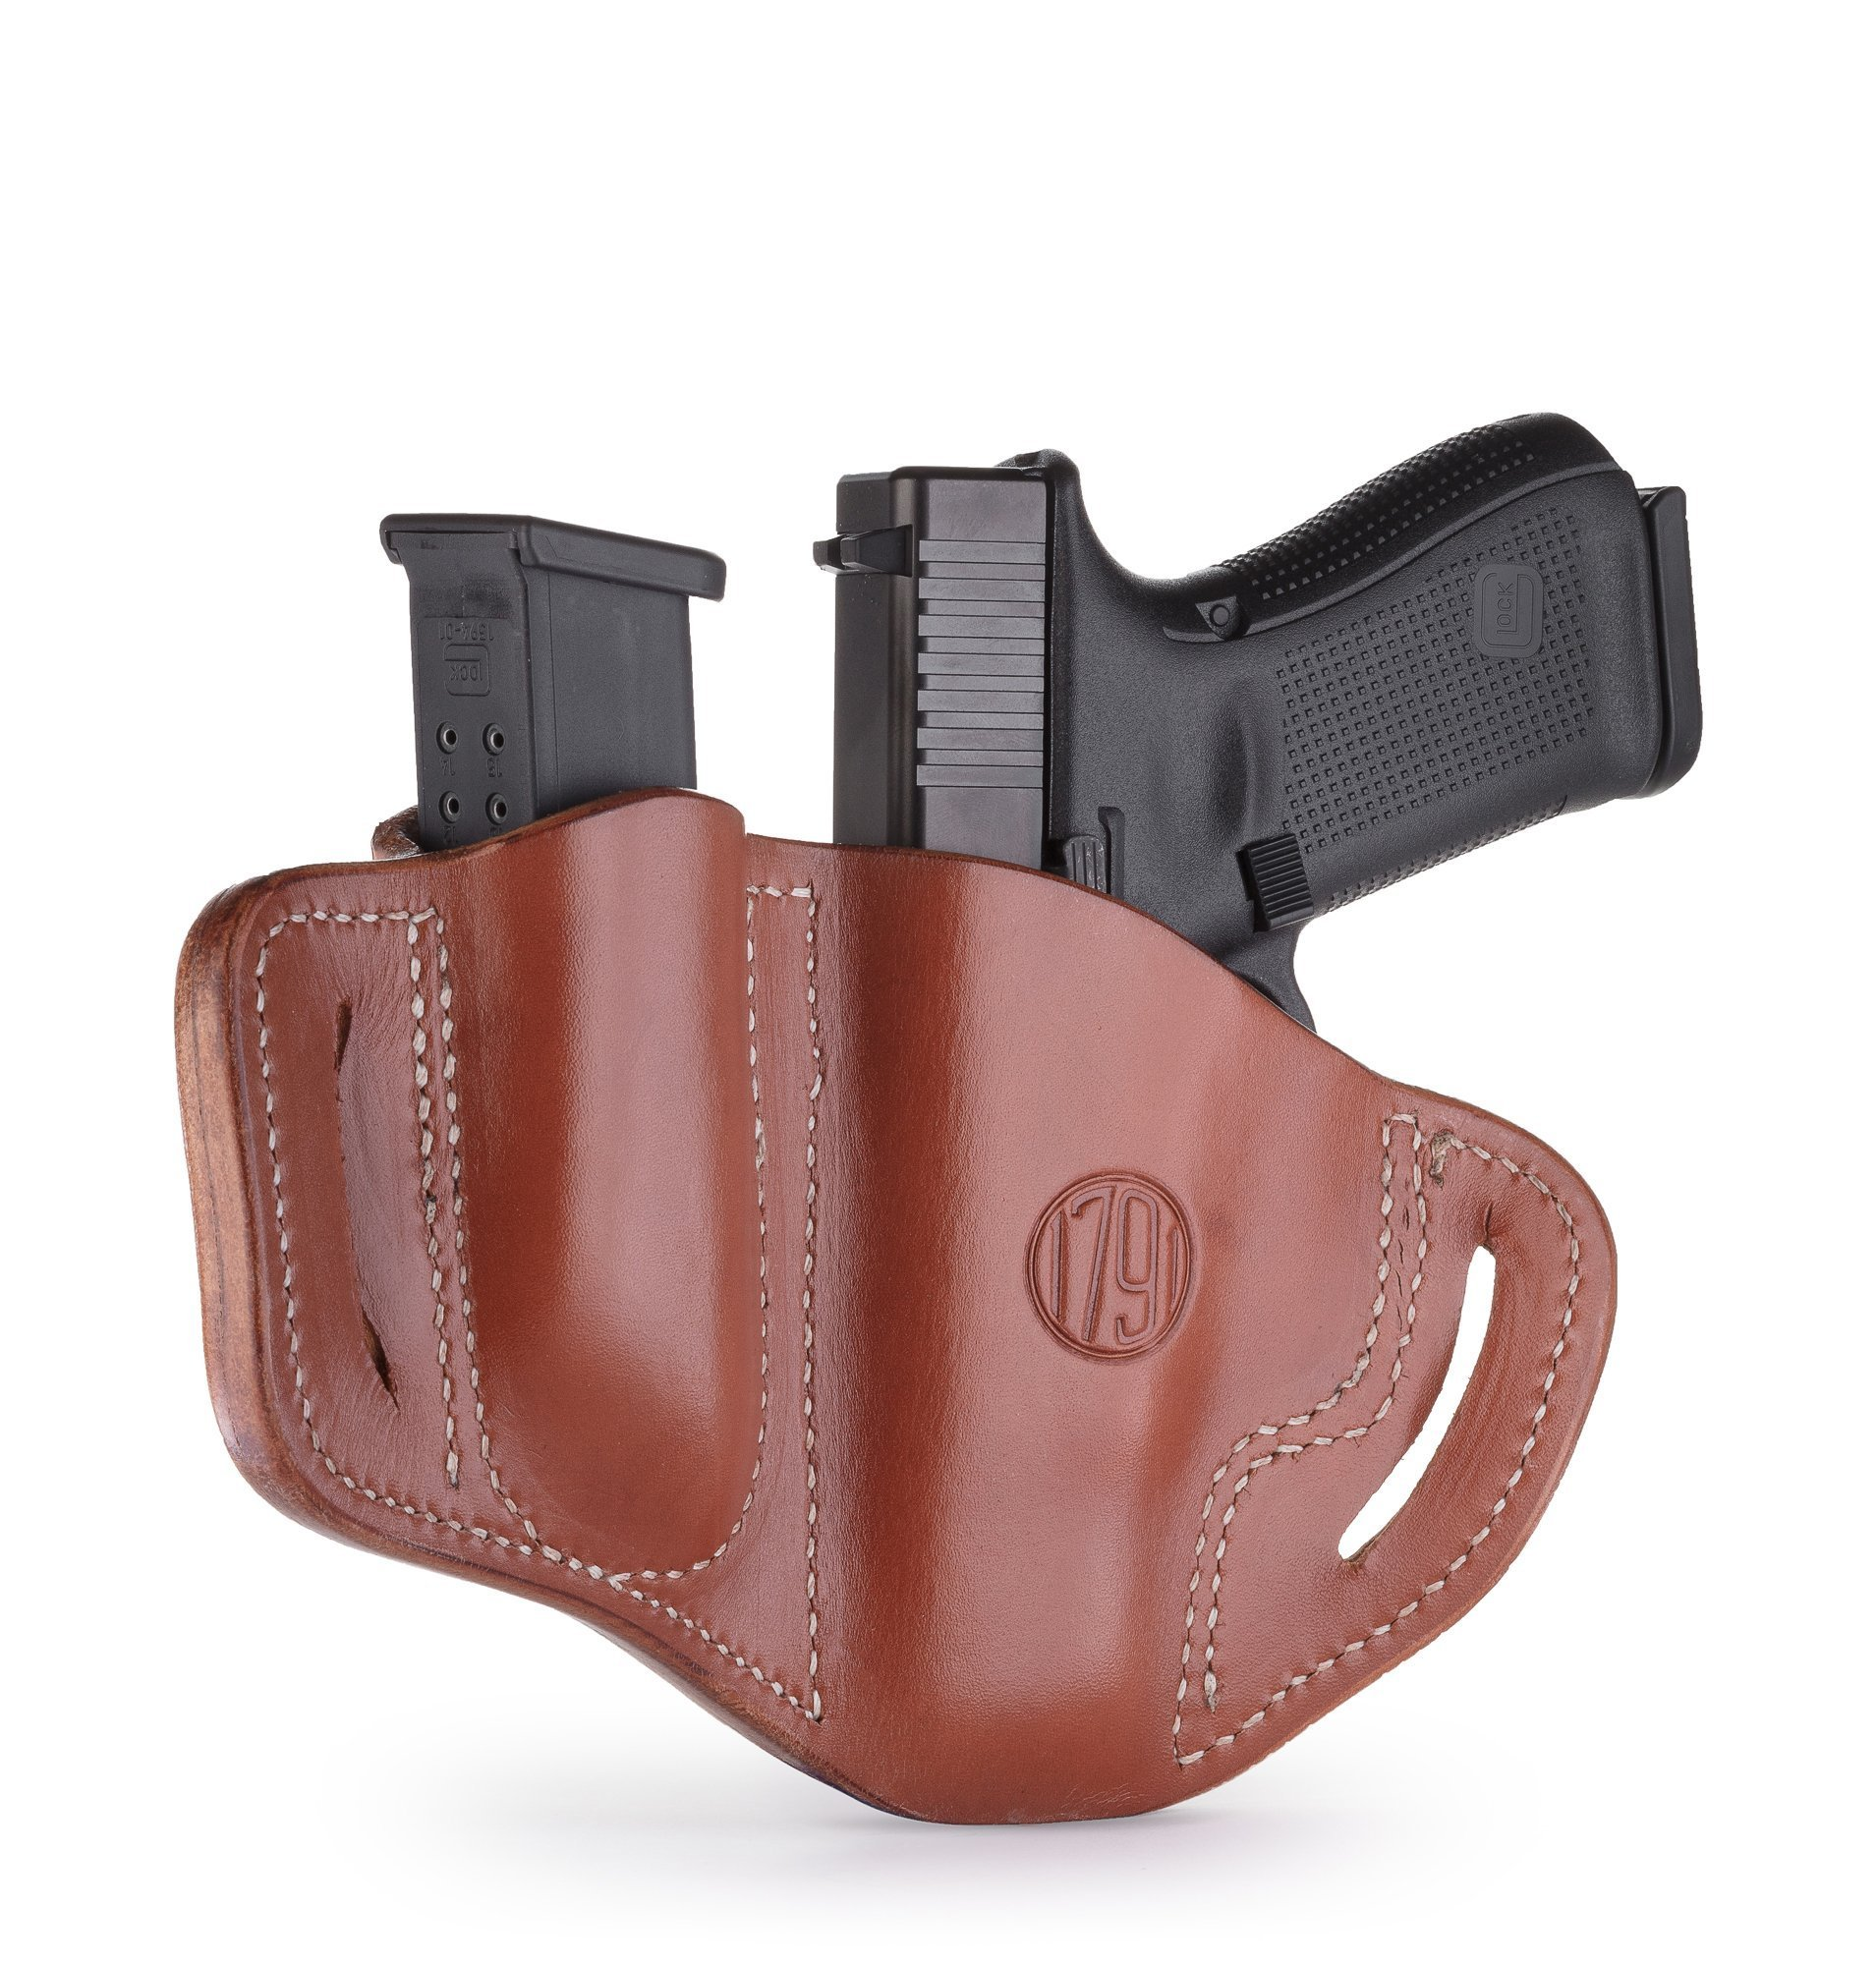 1791 GUNLEATHER Glock 19 Holster - Right Hand OWB G19 Leather Holster for Belts - Fits Glock 19, 23, 26, 27, H&K VP40 and Springfield XDS (BH2.1) (Combo Classic Brown) by 1791 GUNLEATHER (Image #2)